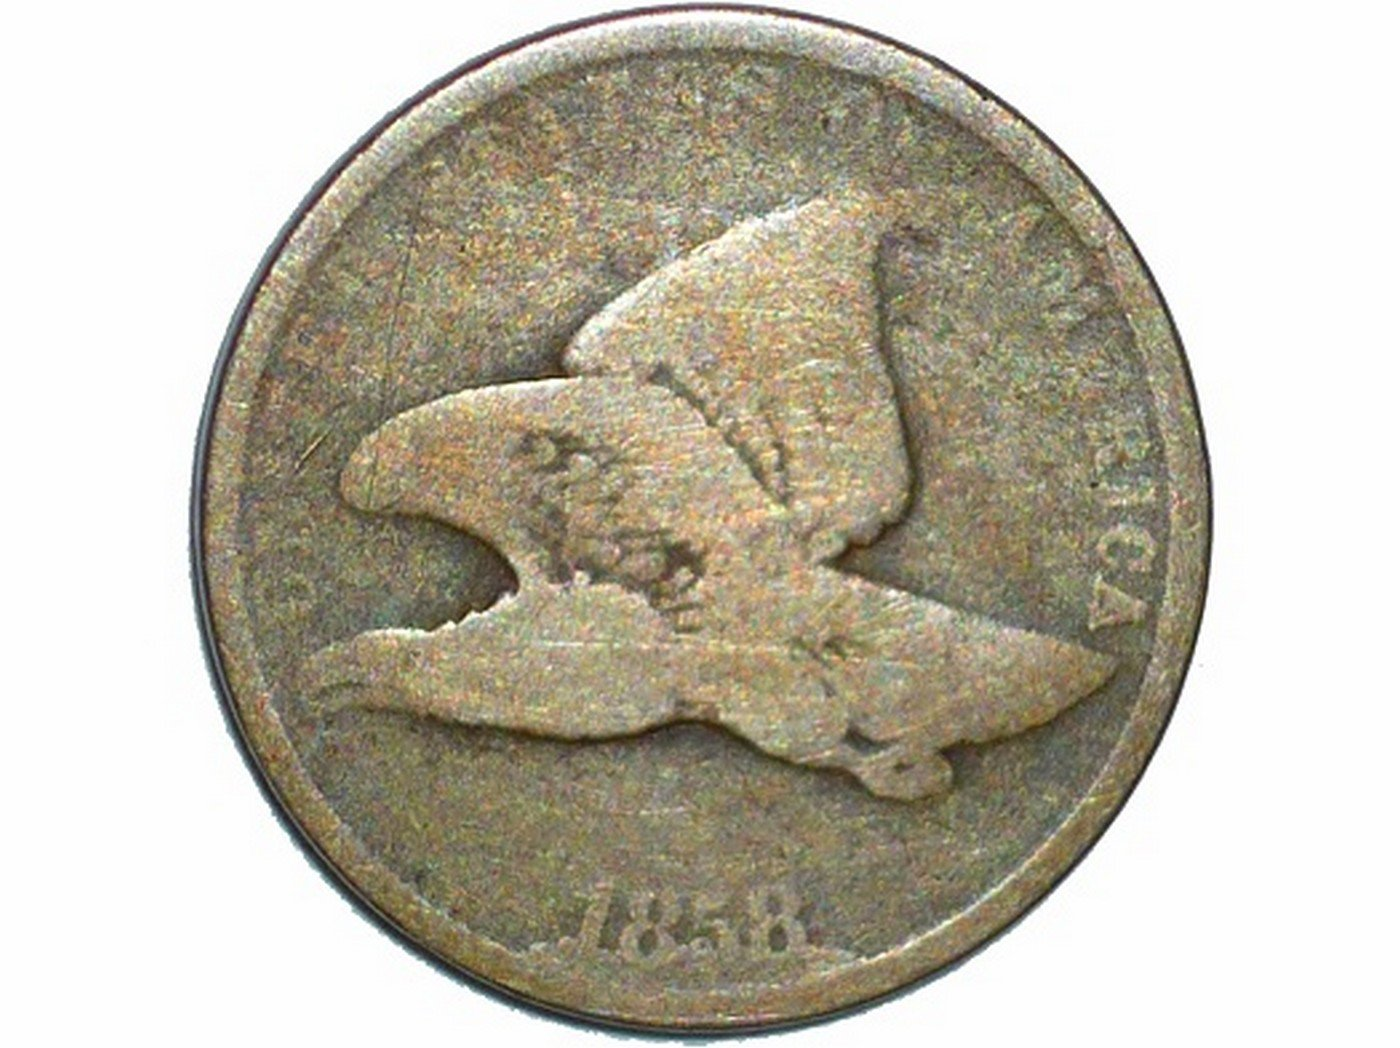 1858 CUD-007 - Flying Eagle Penny - Photo by David Poliquin